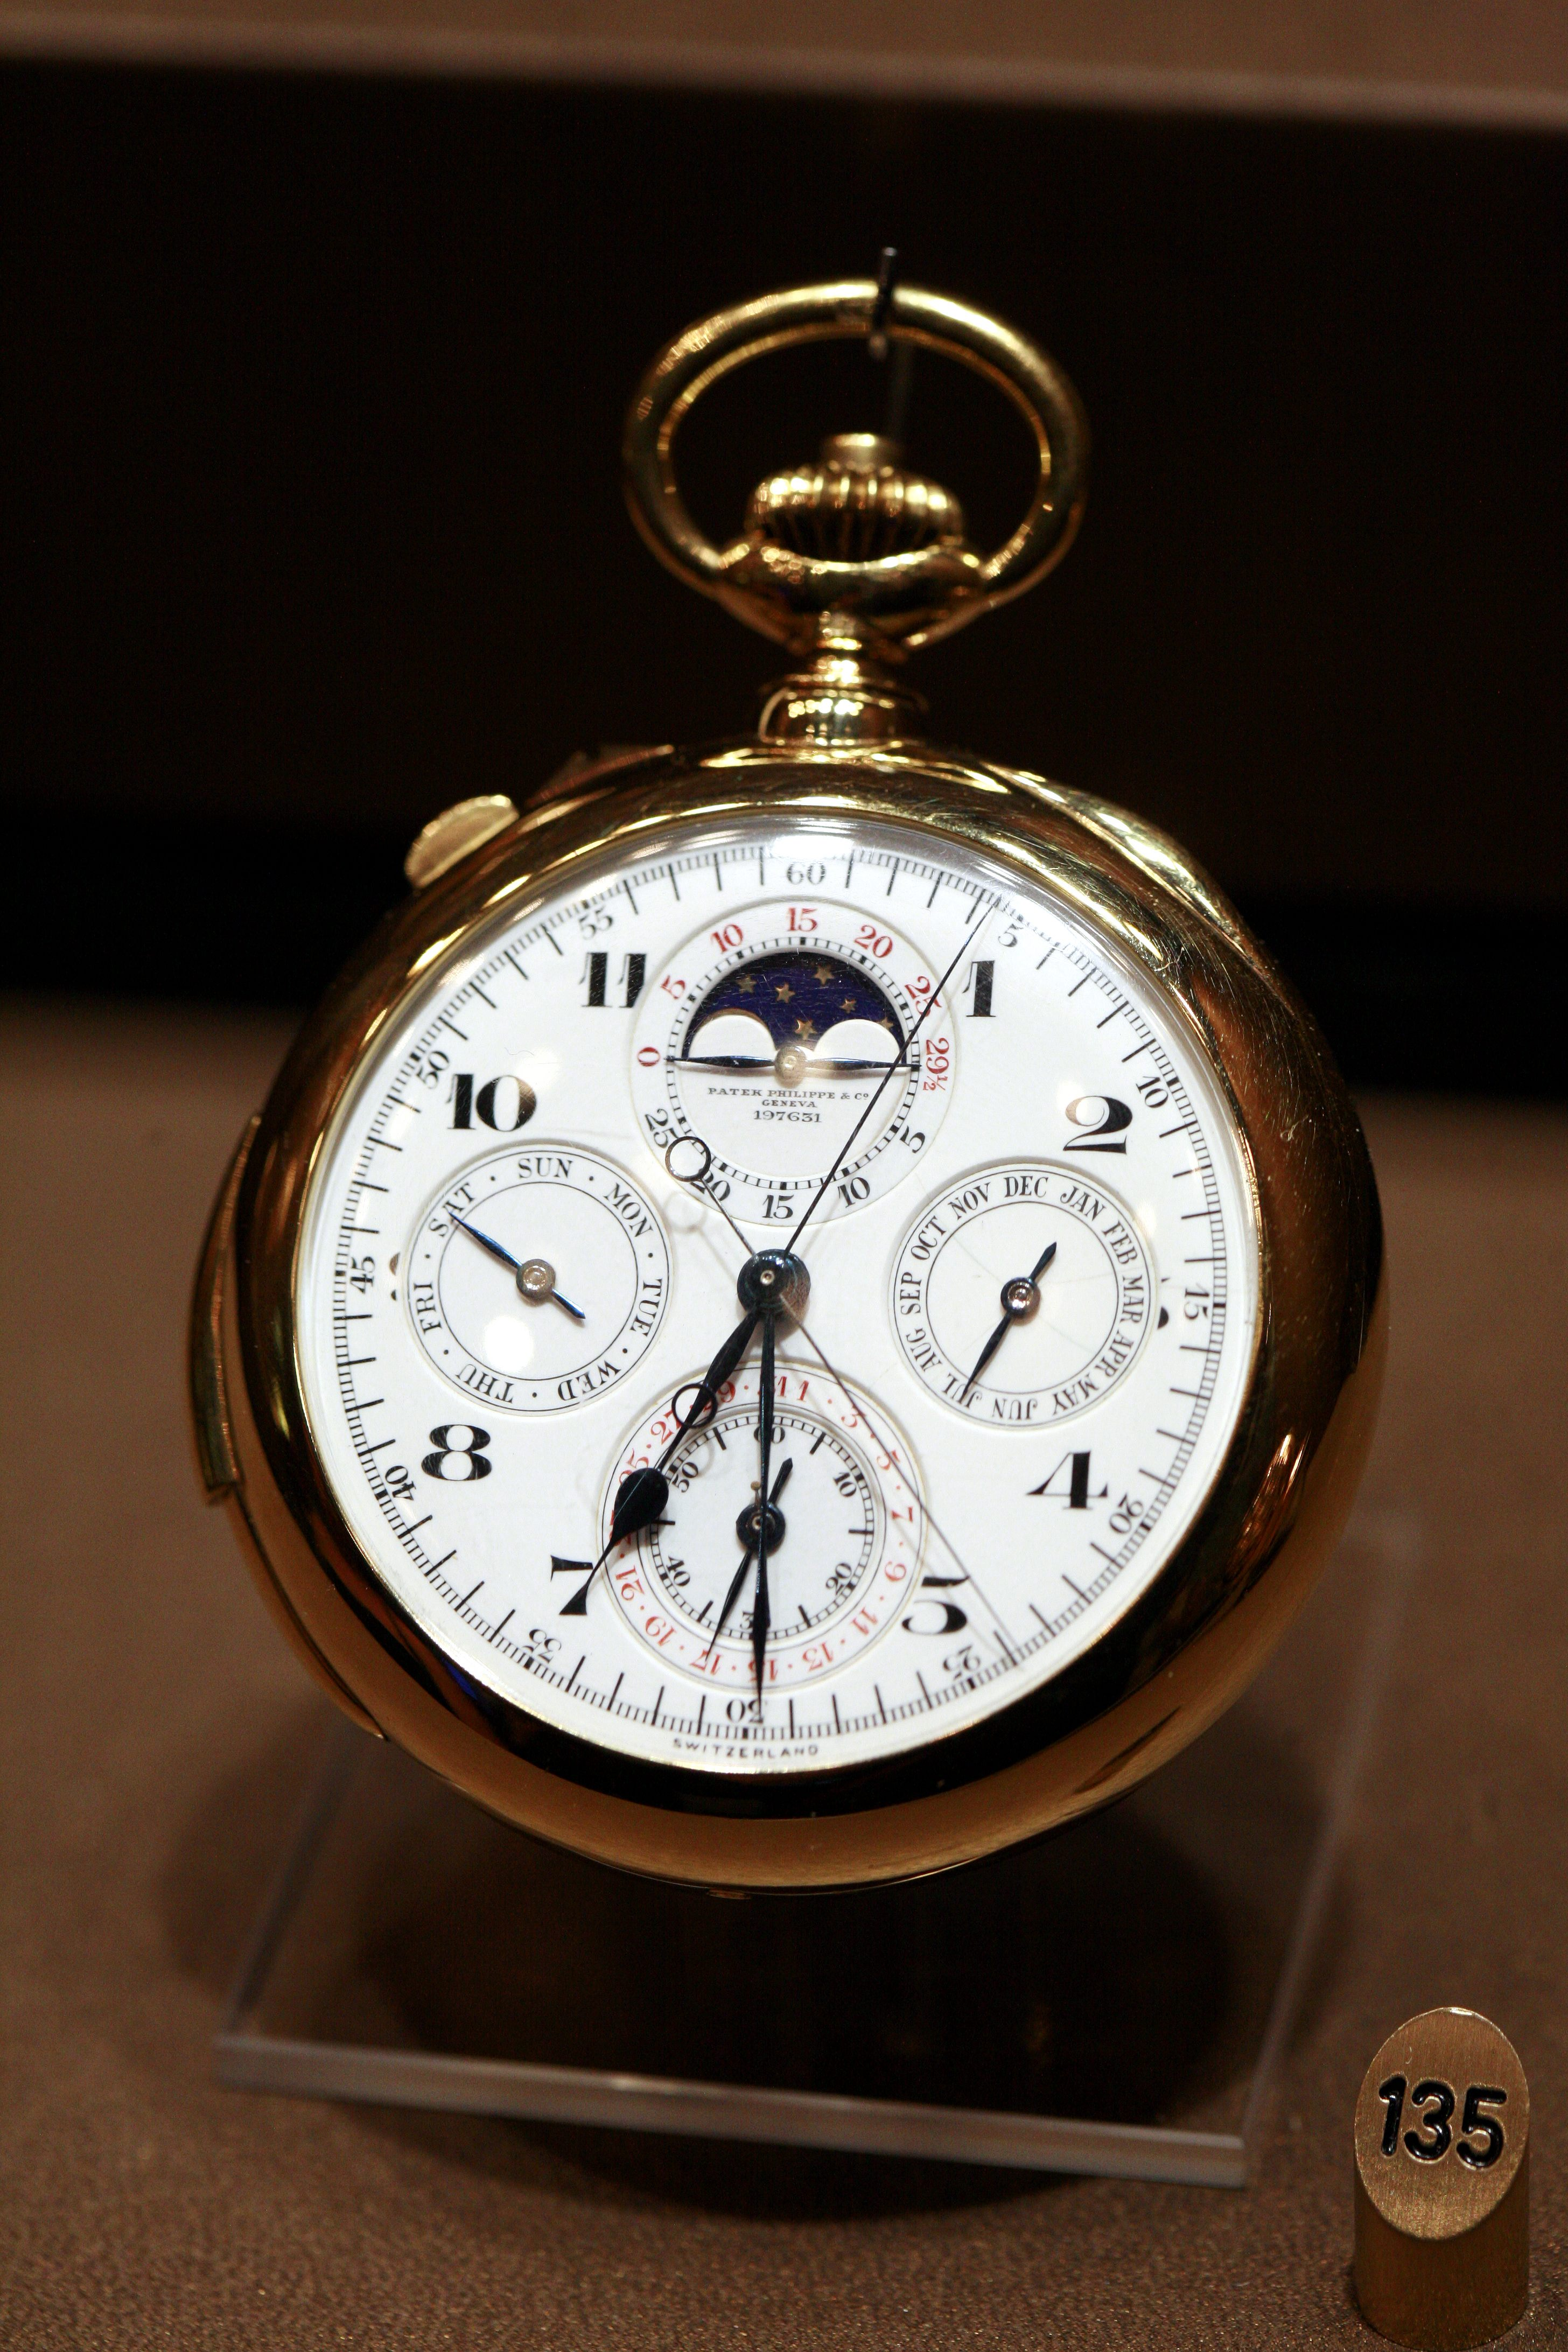 P Philippe Watch List Of Most Expensive Watches Sold At Auction Wikipedia